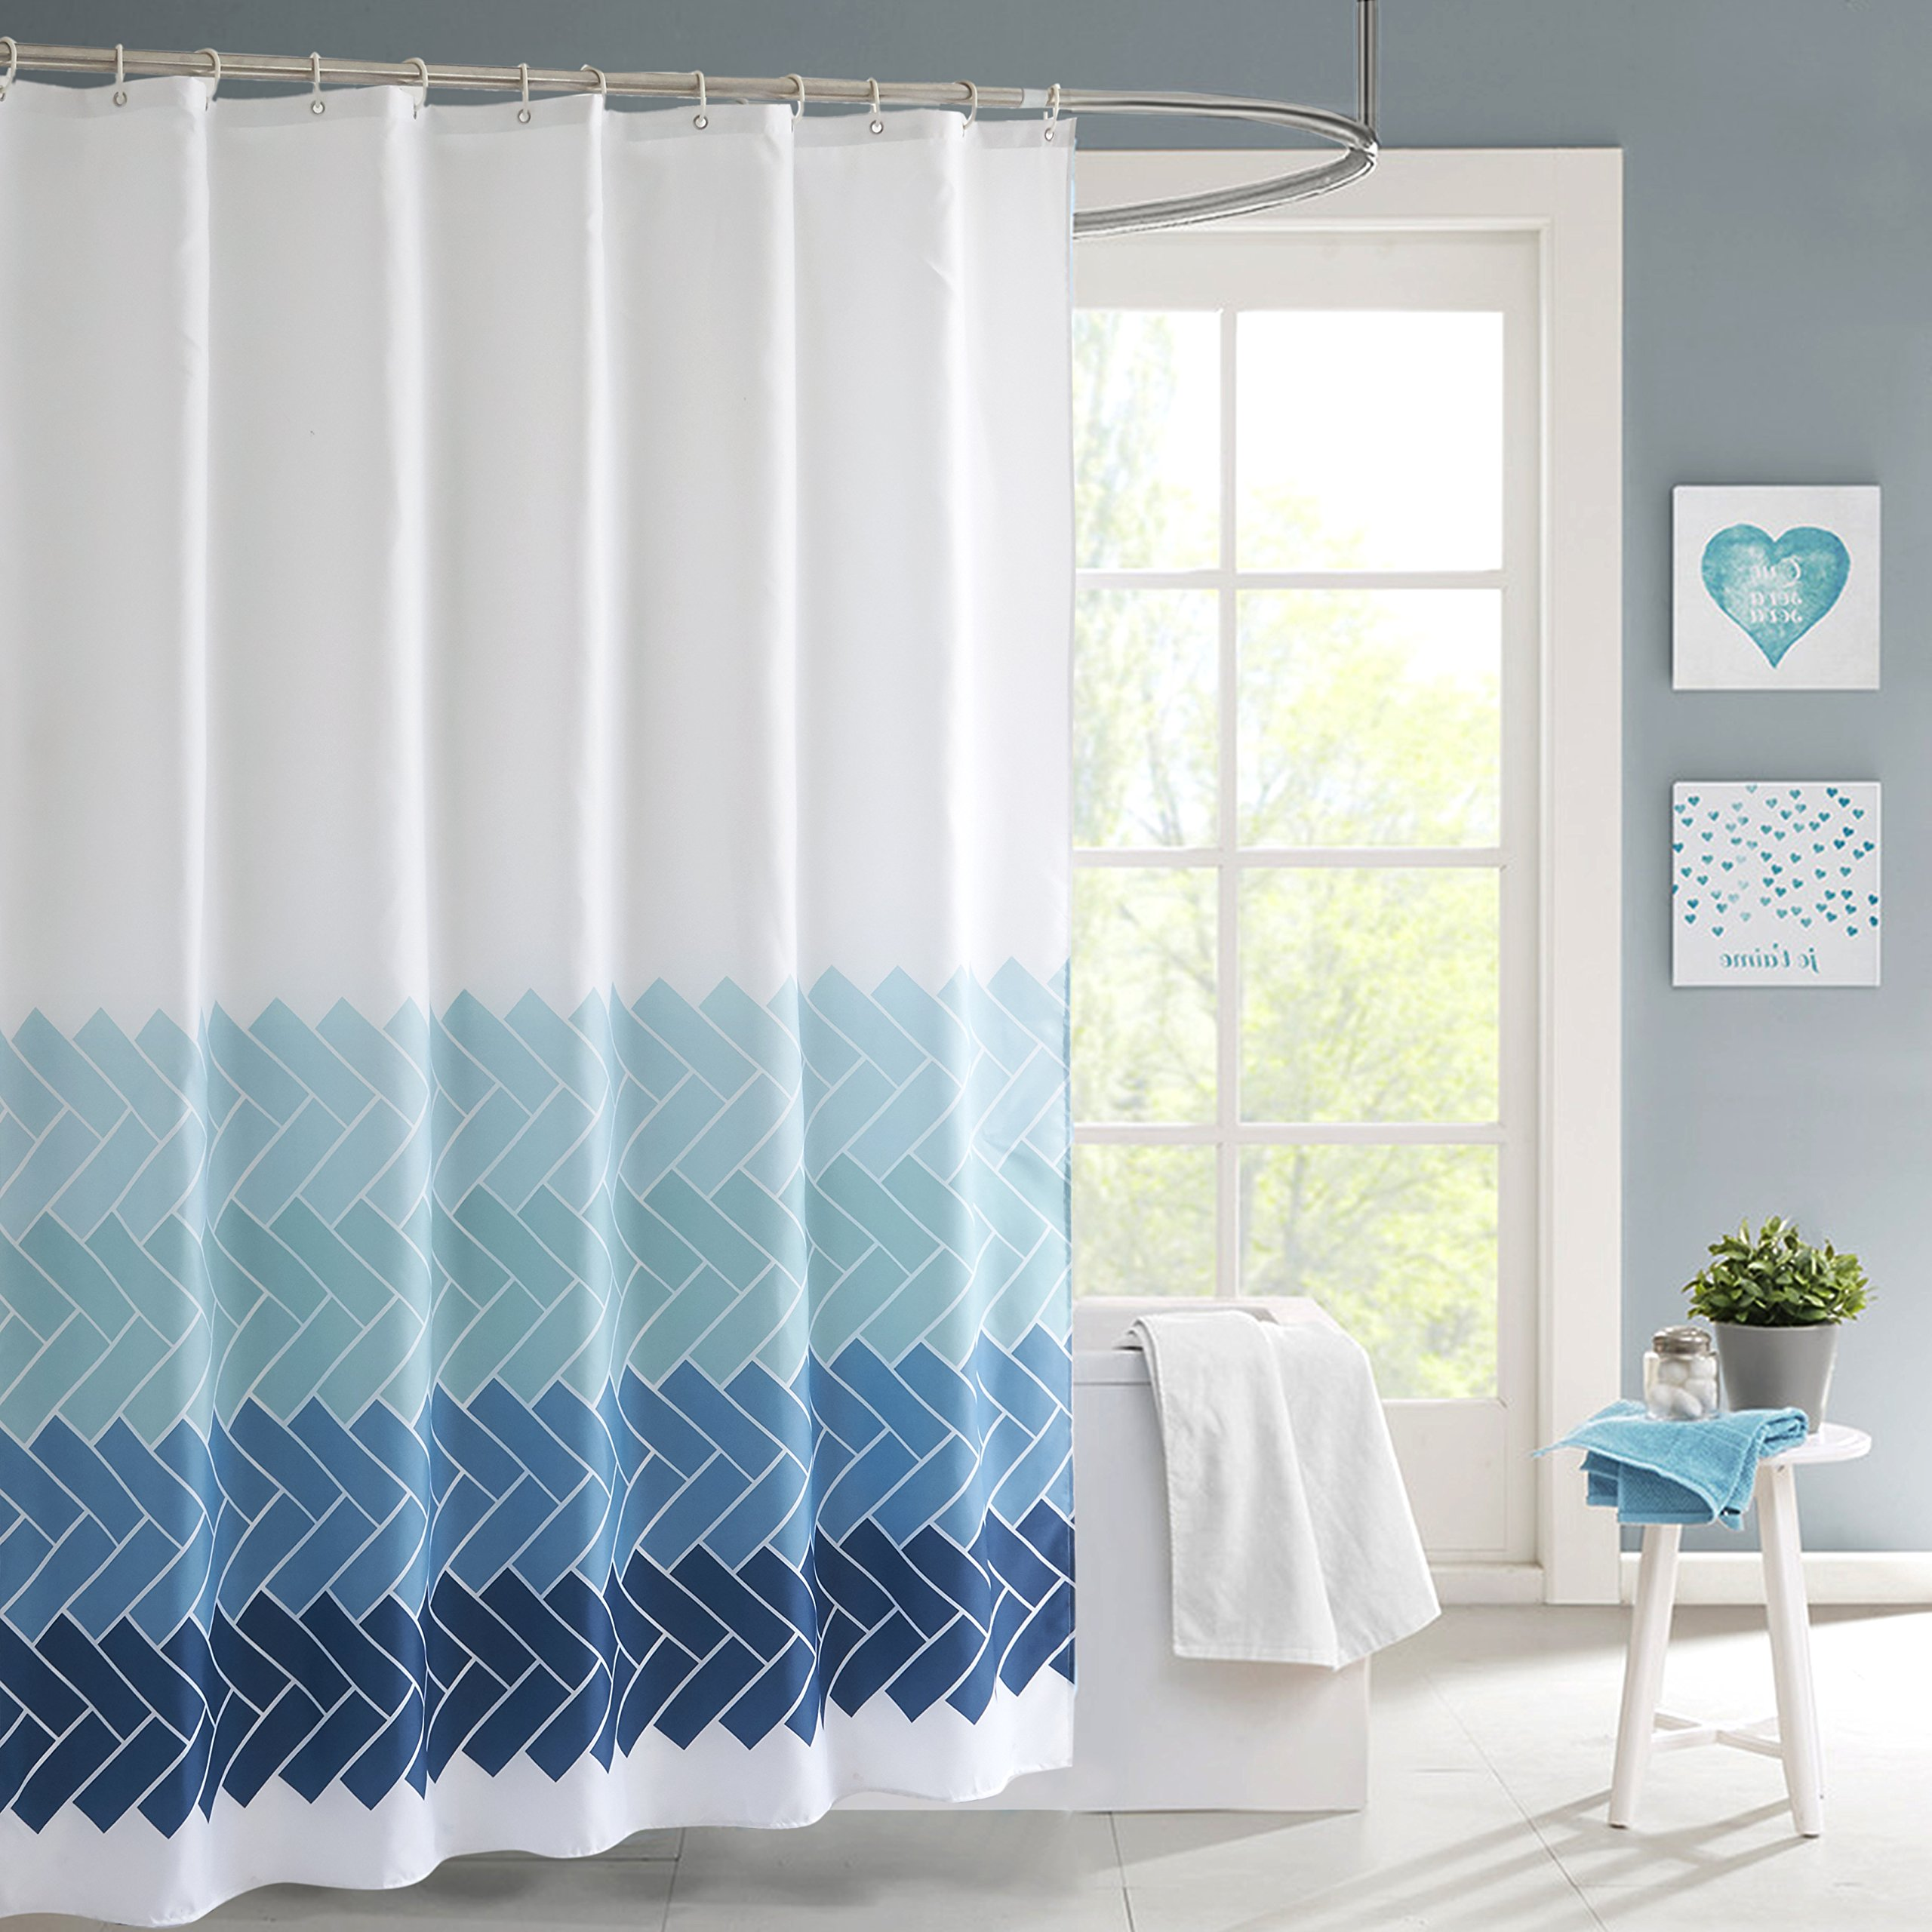 MithMetal Shower Curtain PEVA Waterproof & Water Repellent Bathtub Bathroom Shower Curtain Mildew Resistant Thickened Version Attached with 12 Shower Hooks 70'' x 78'' (Blue Stripe)